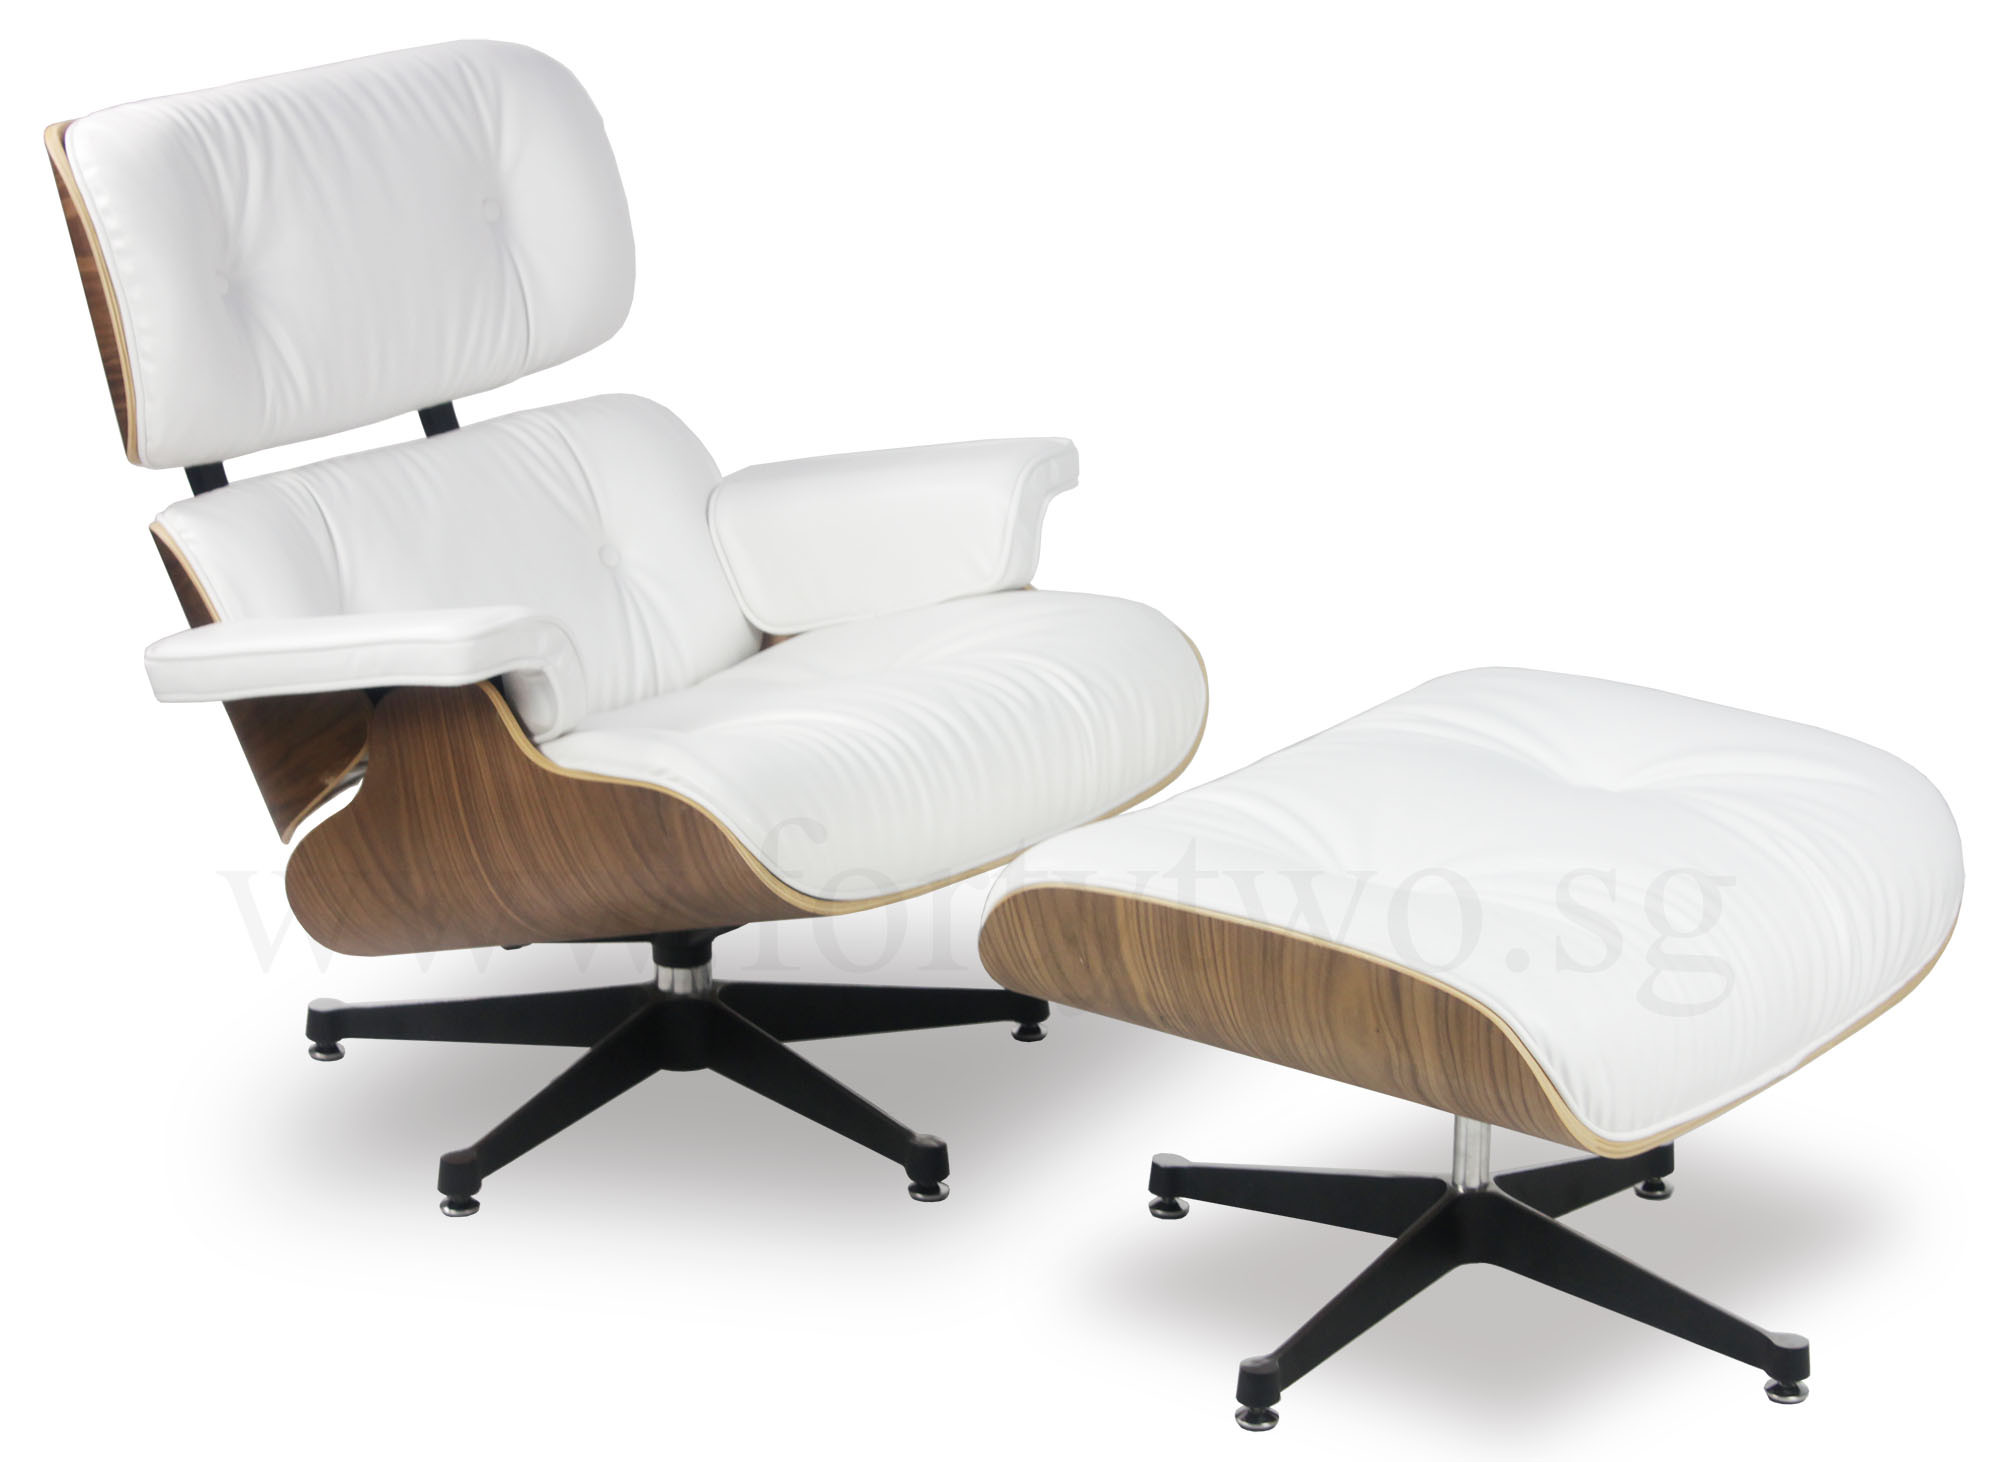 Eames Replica Designer Replica Eames Lounge Chair White Leather